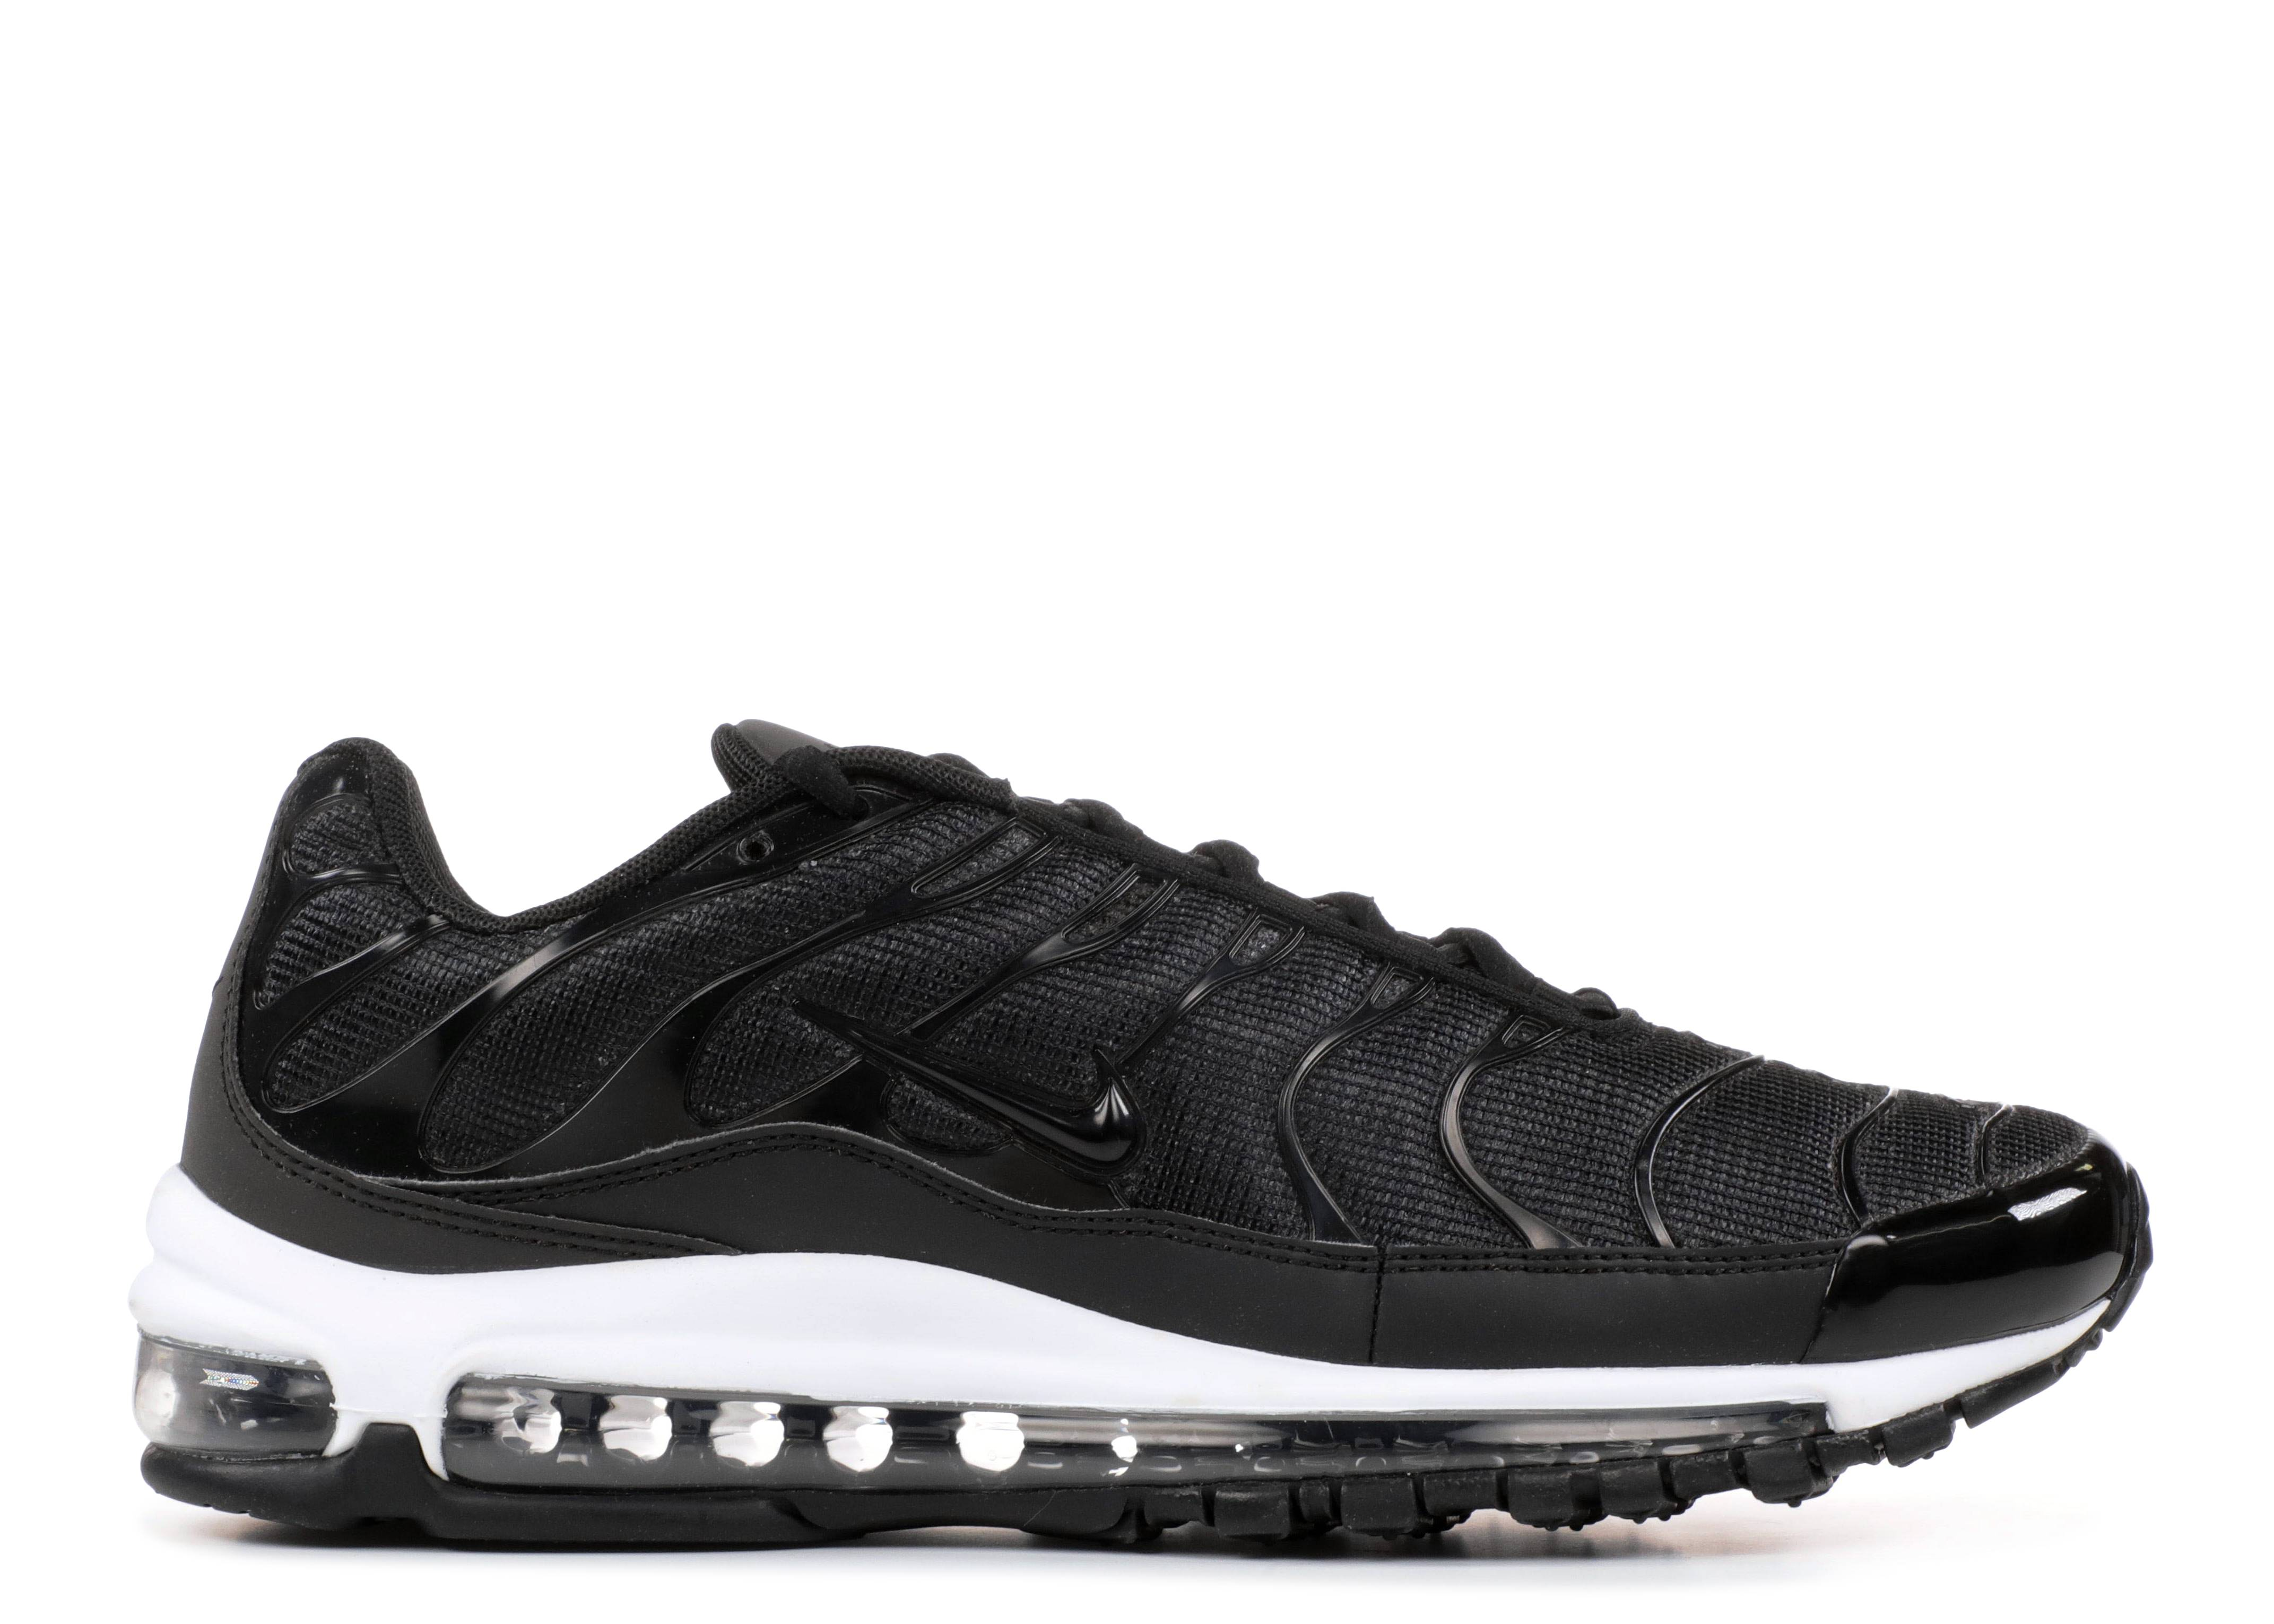 f7c488a08eb921 Air Max 97 plus - Nike - ah8144 001 - black anthracite-white ...